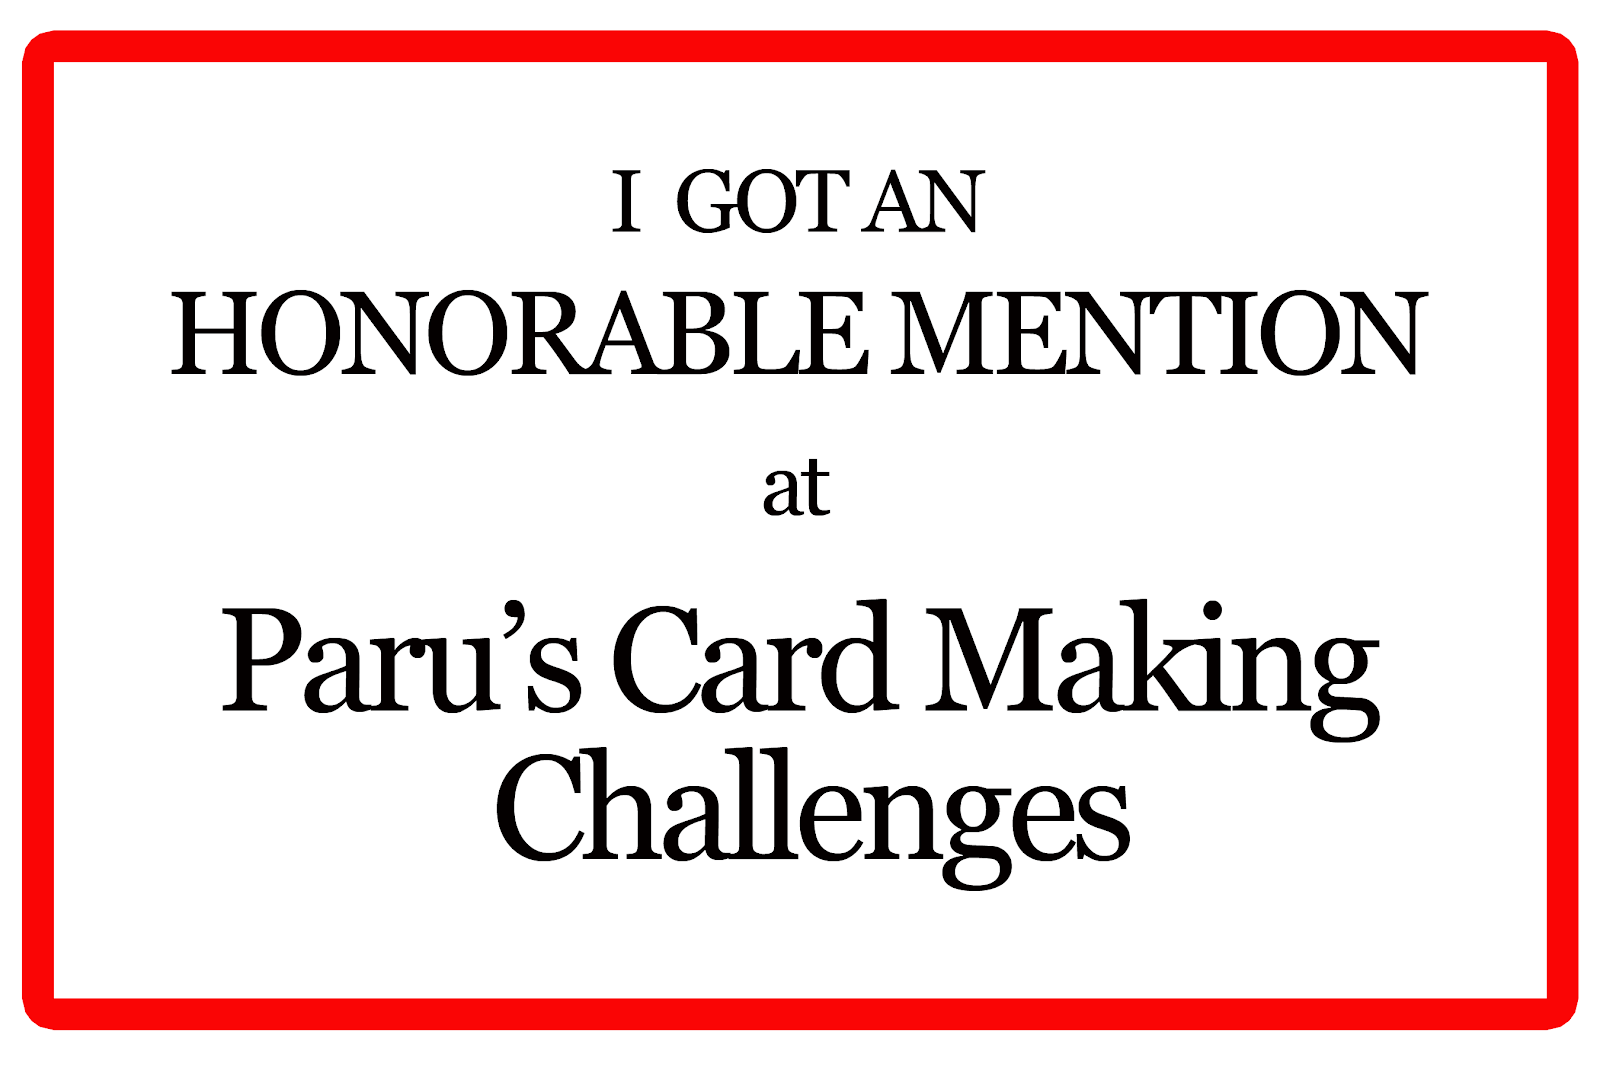 2 x Honorable Mention at Paru's Card Making Challenges